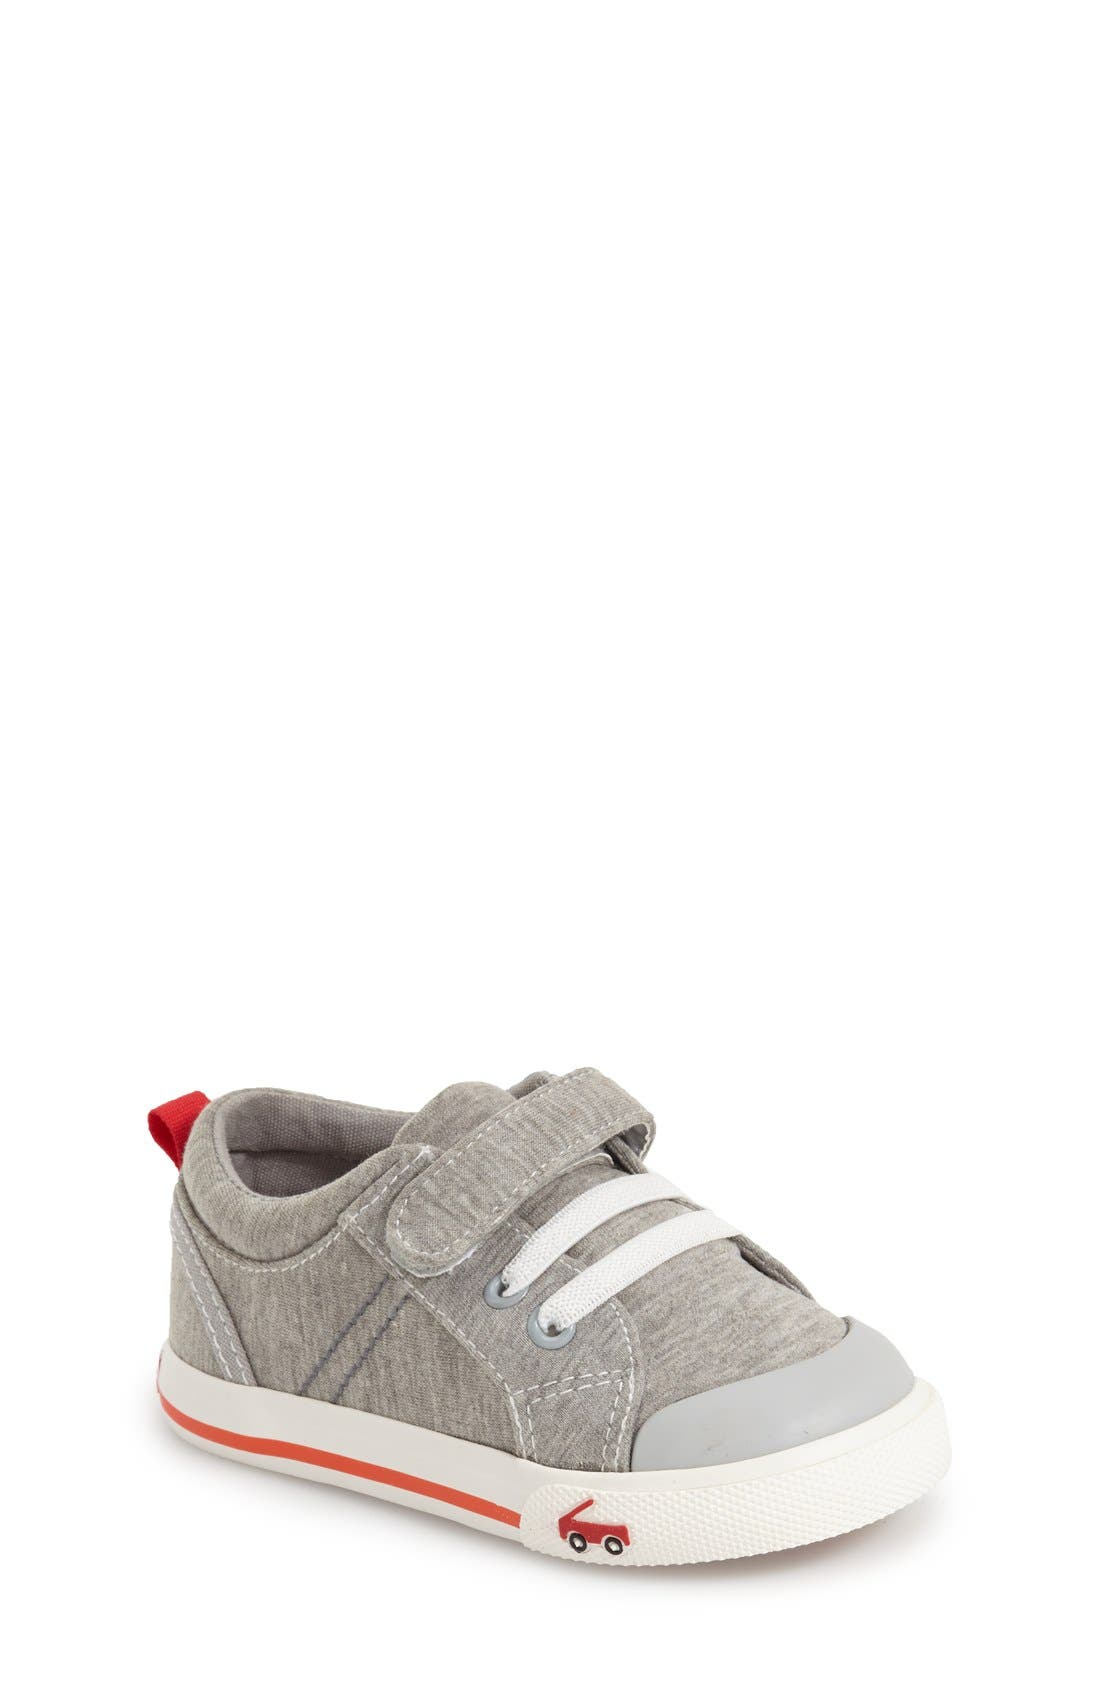 SEE KAI RUN 'Tanner' Sneaker, Main, color, 020